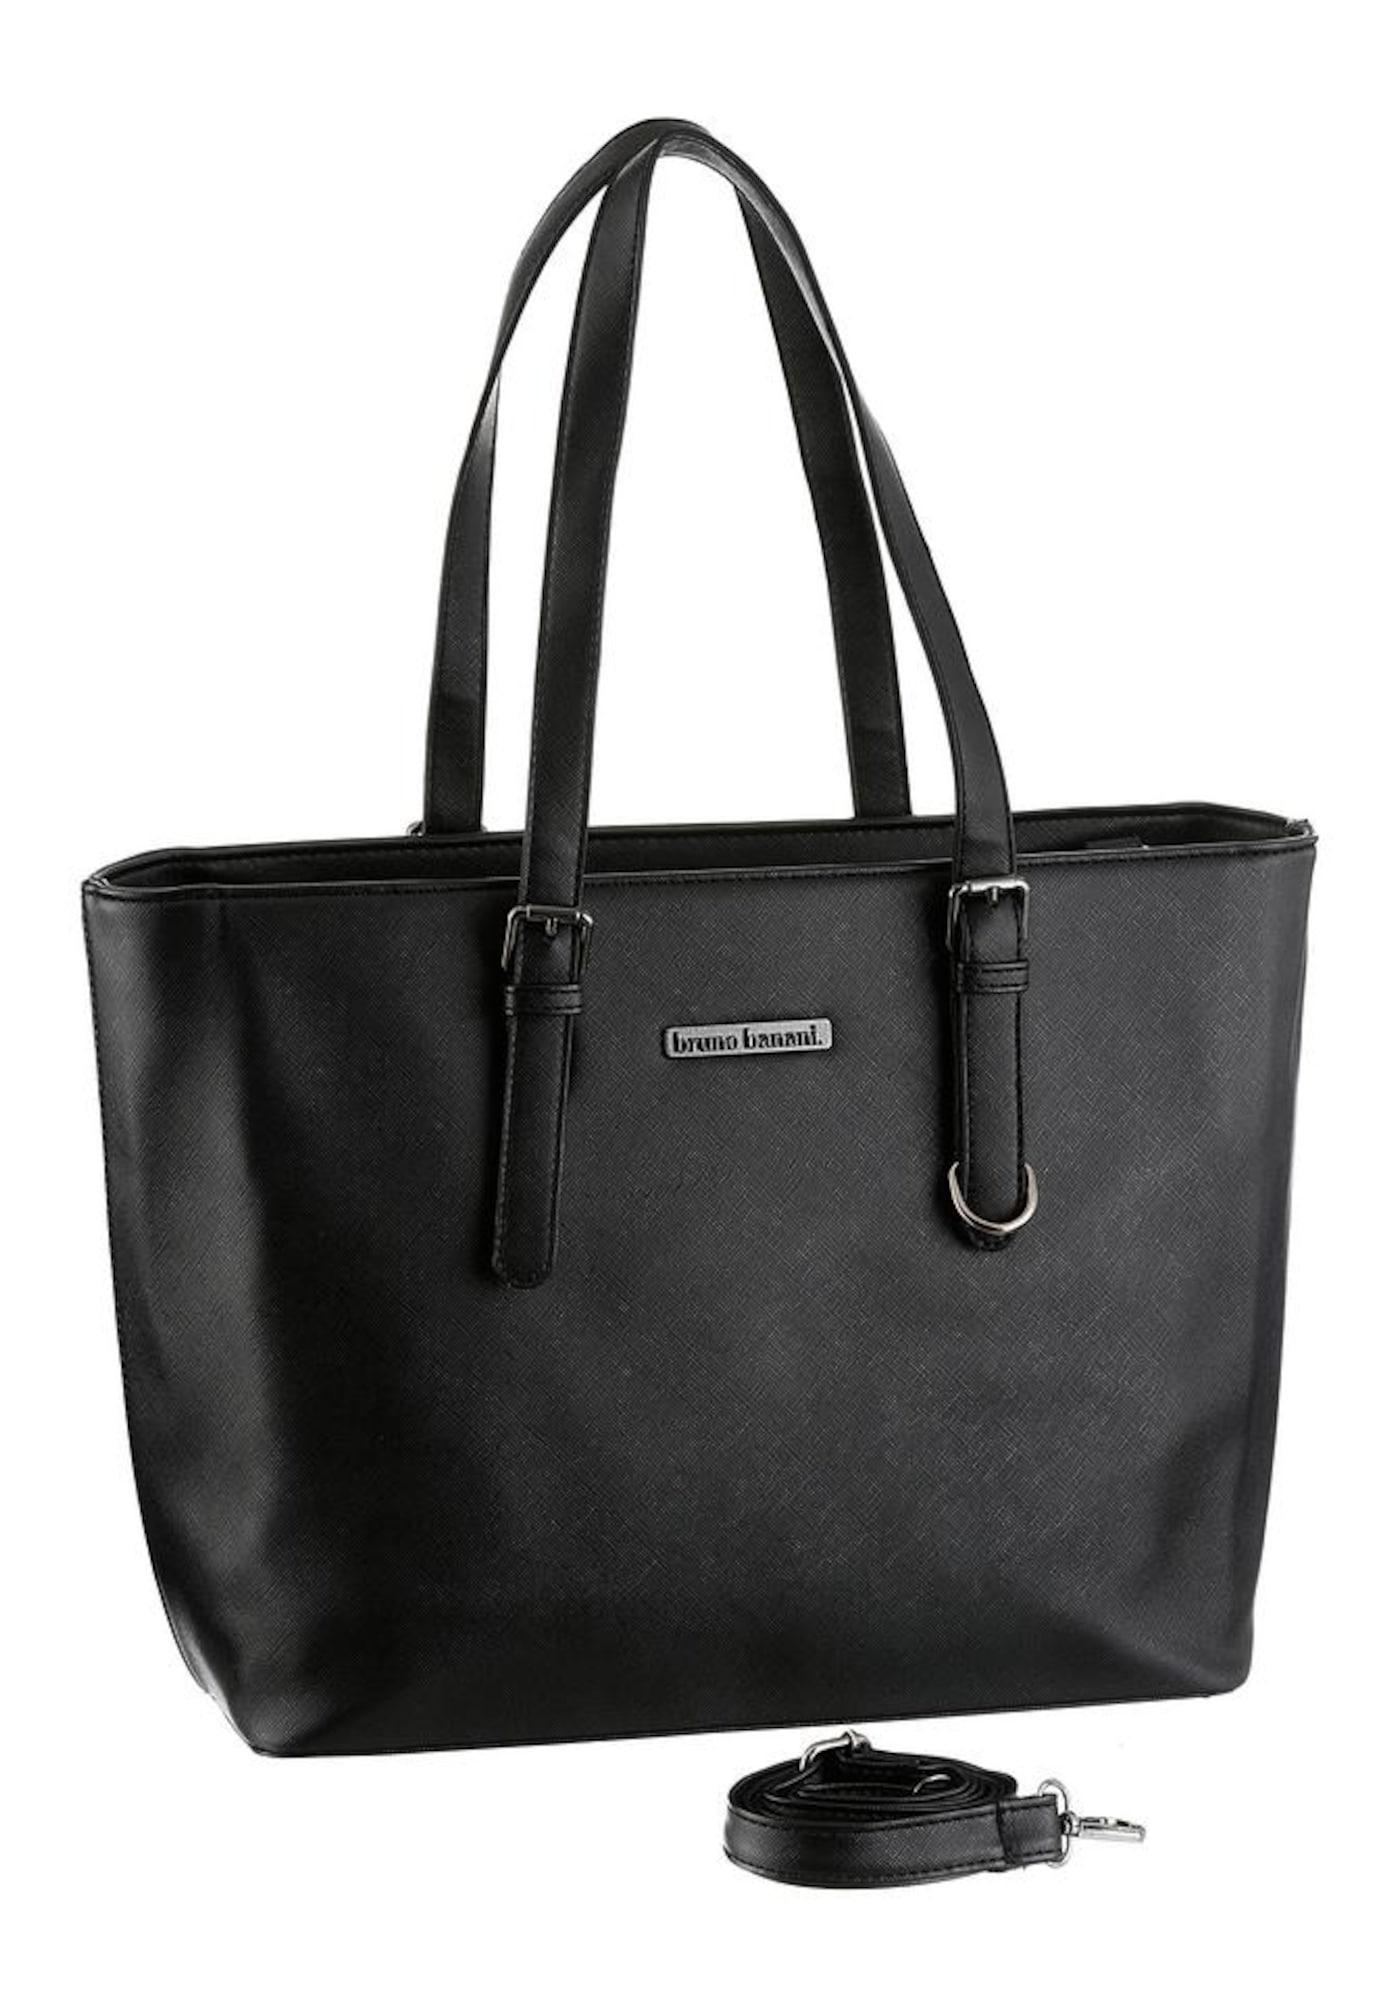 BRUNO BANANI Shopper schwarz